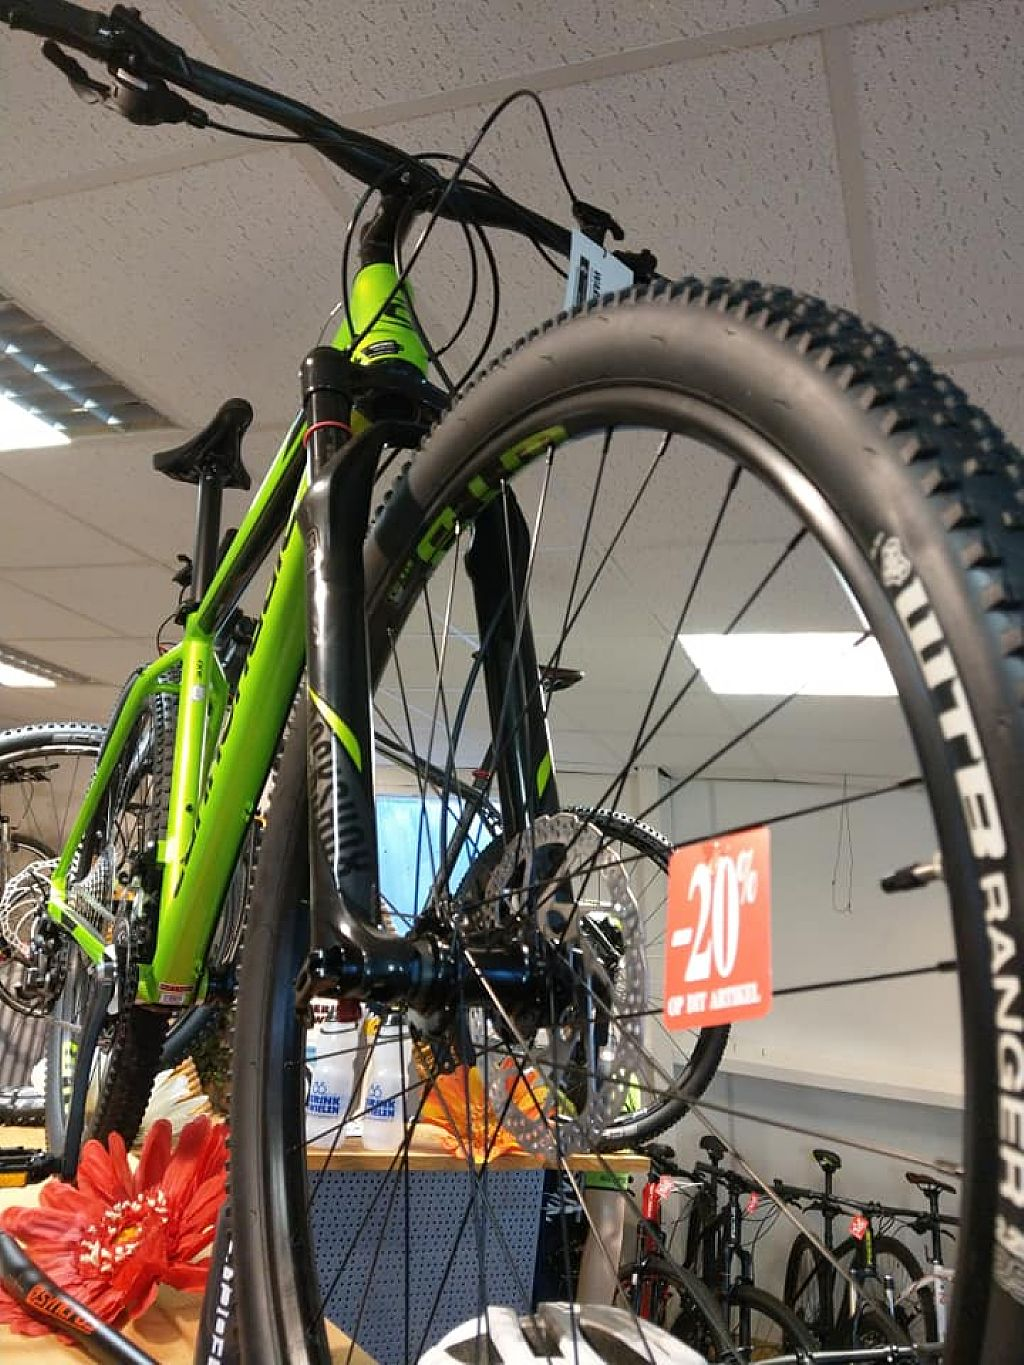 Cannondale OPRUIMING OP ALLE RACE EN MOUNTAINBIKES Kortingen tot 40 PROCENT met I-Brakes